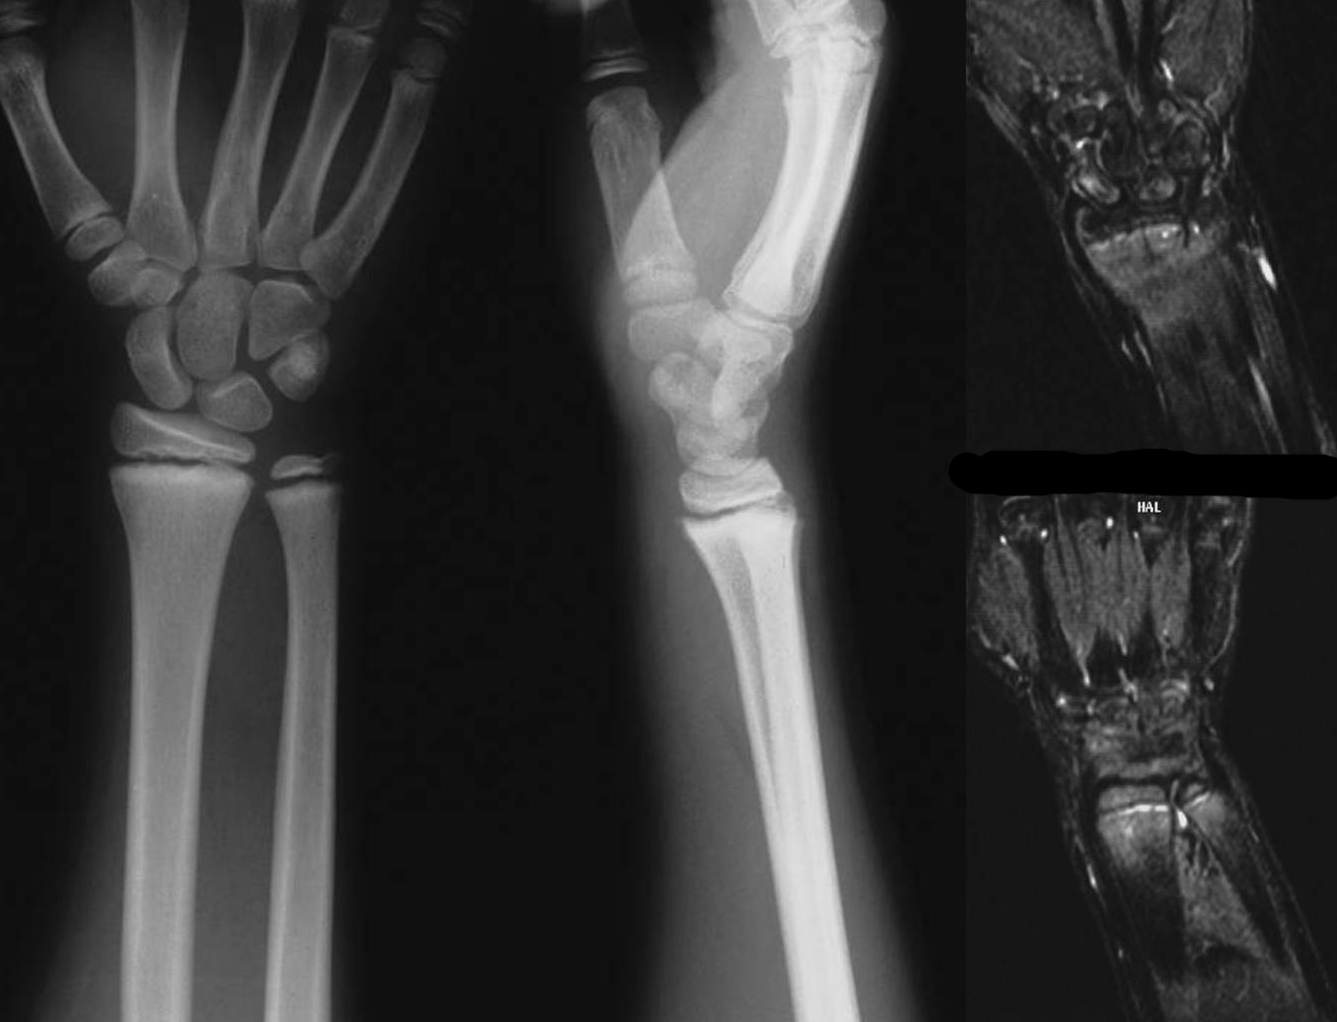 Occult Pediatric Scaphoid Injuries Sferopoulos International